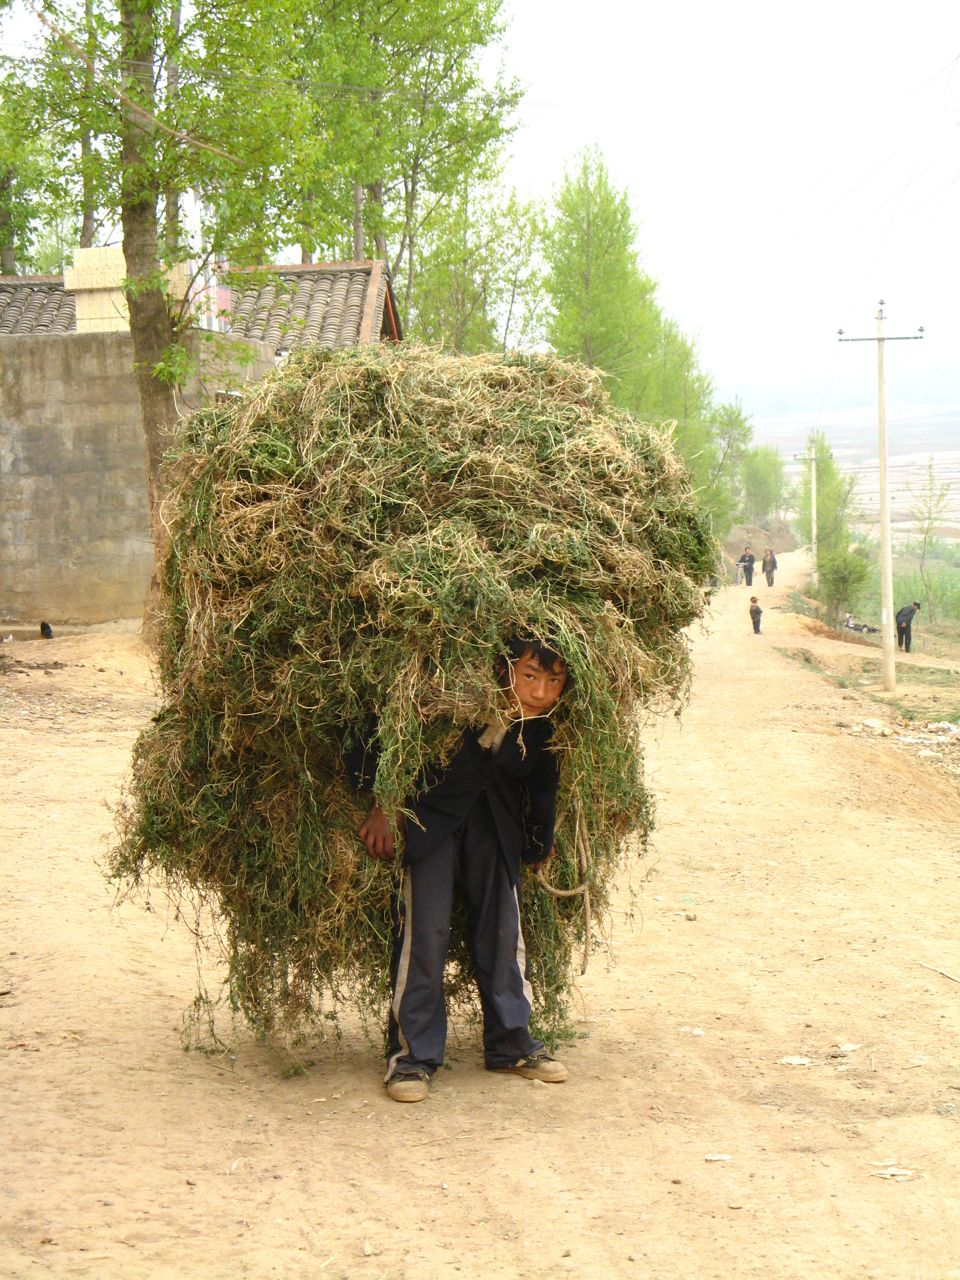 Rural china sichuan provence hay carried on back